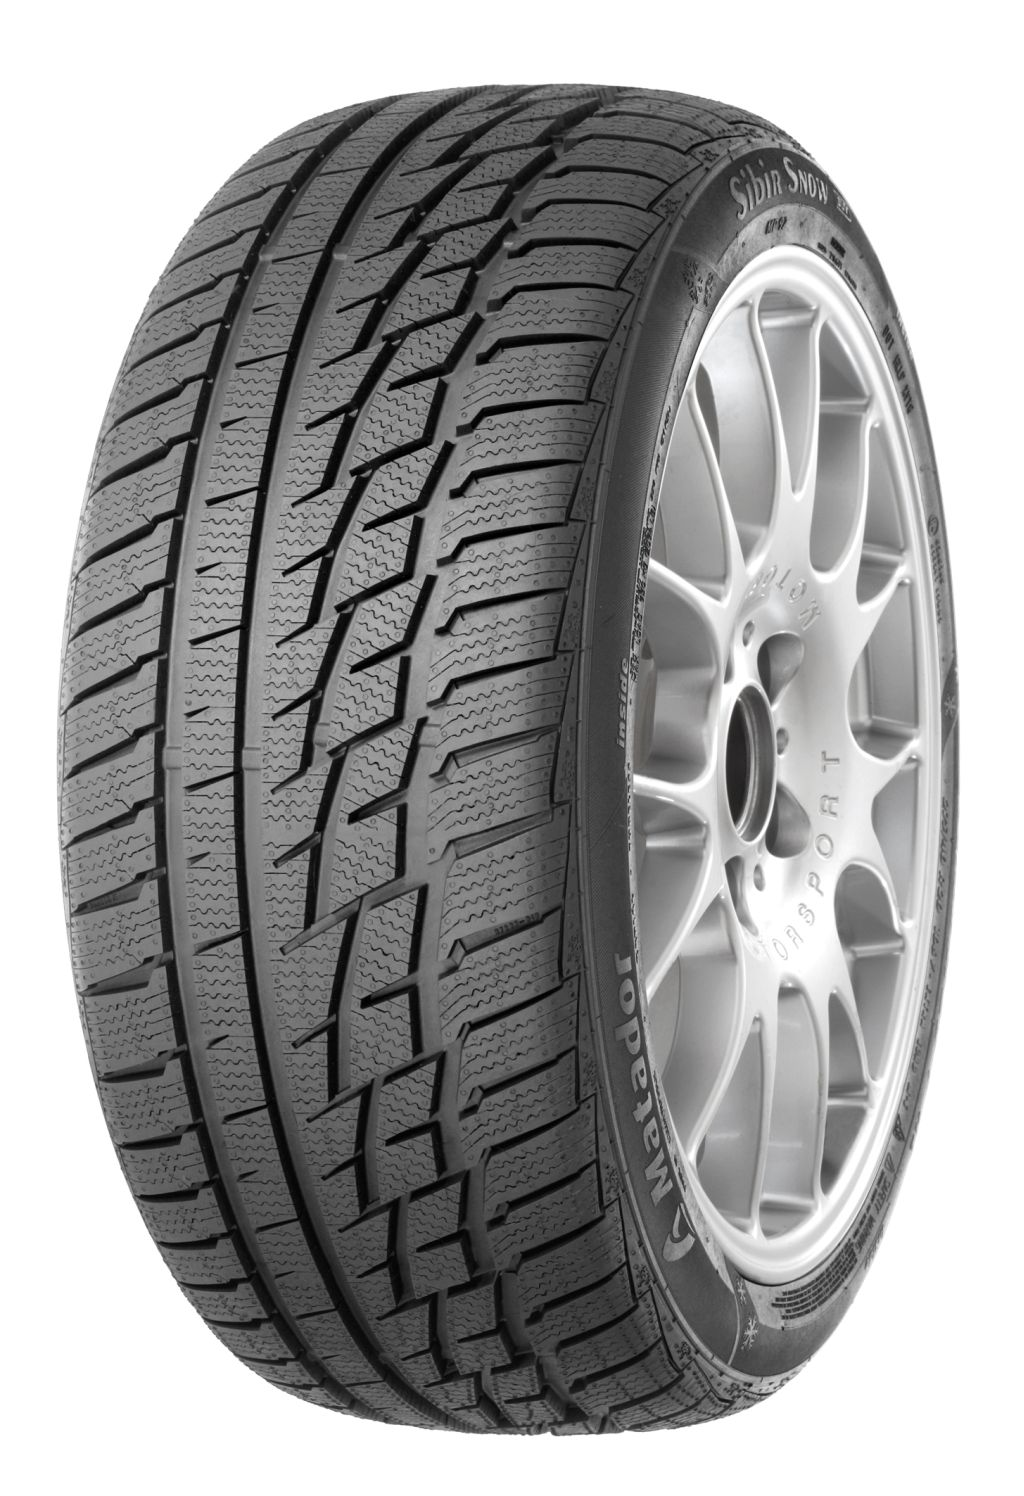 205/55R16 94H, Matador, MP92 Sibir Snow